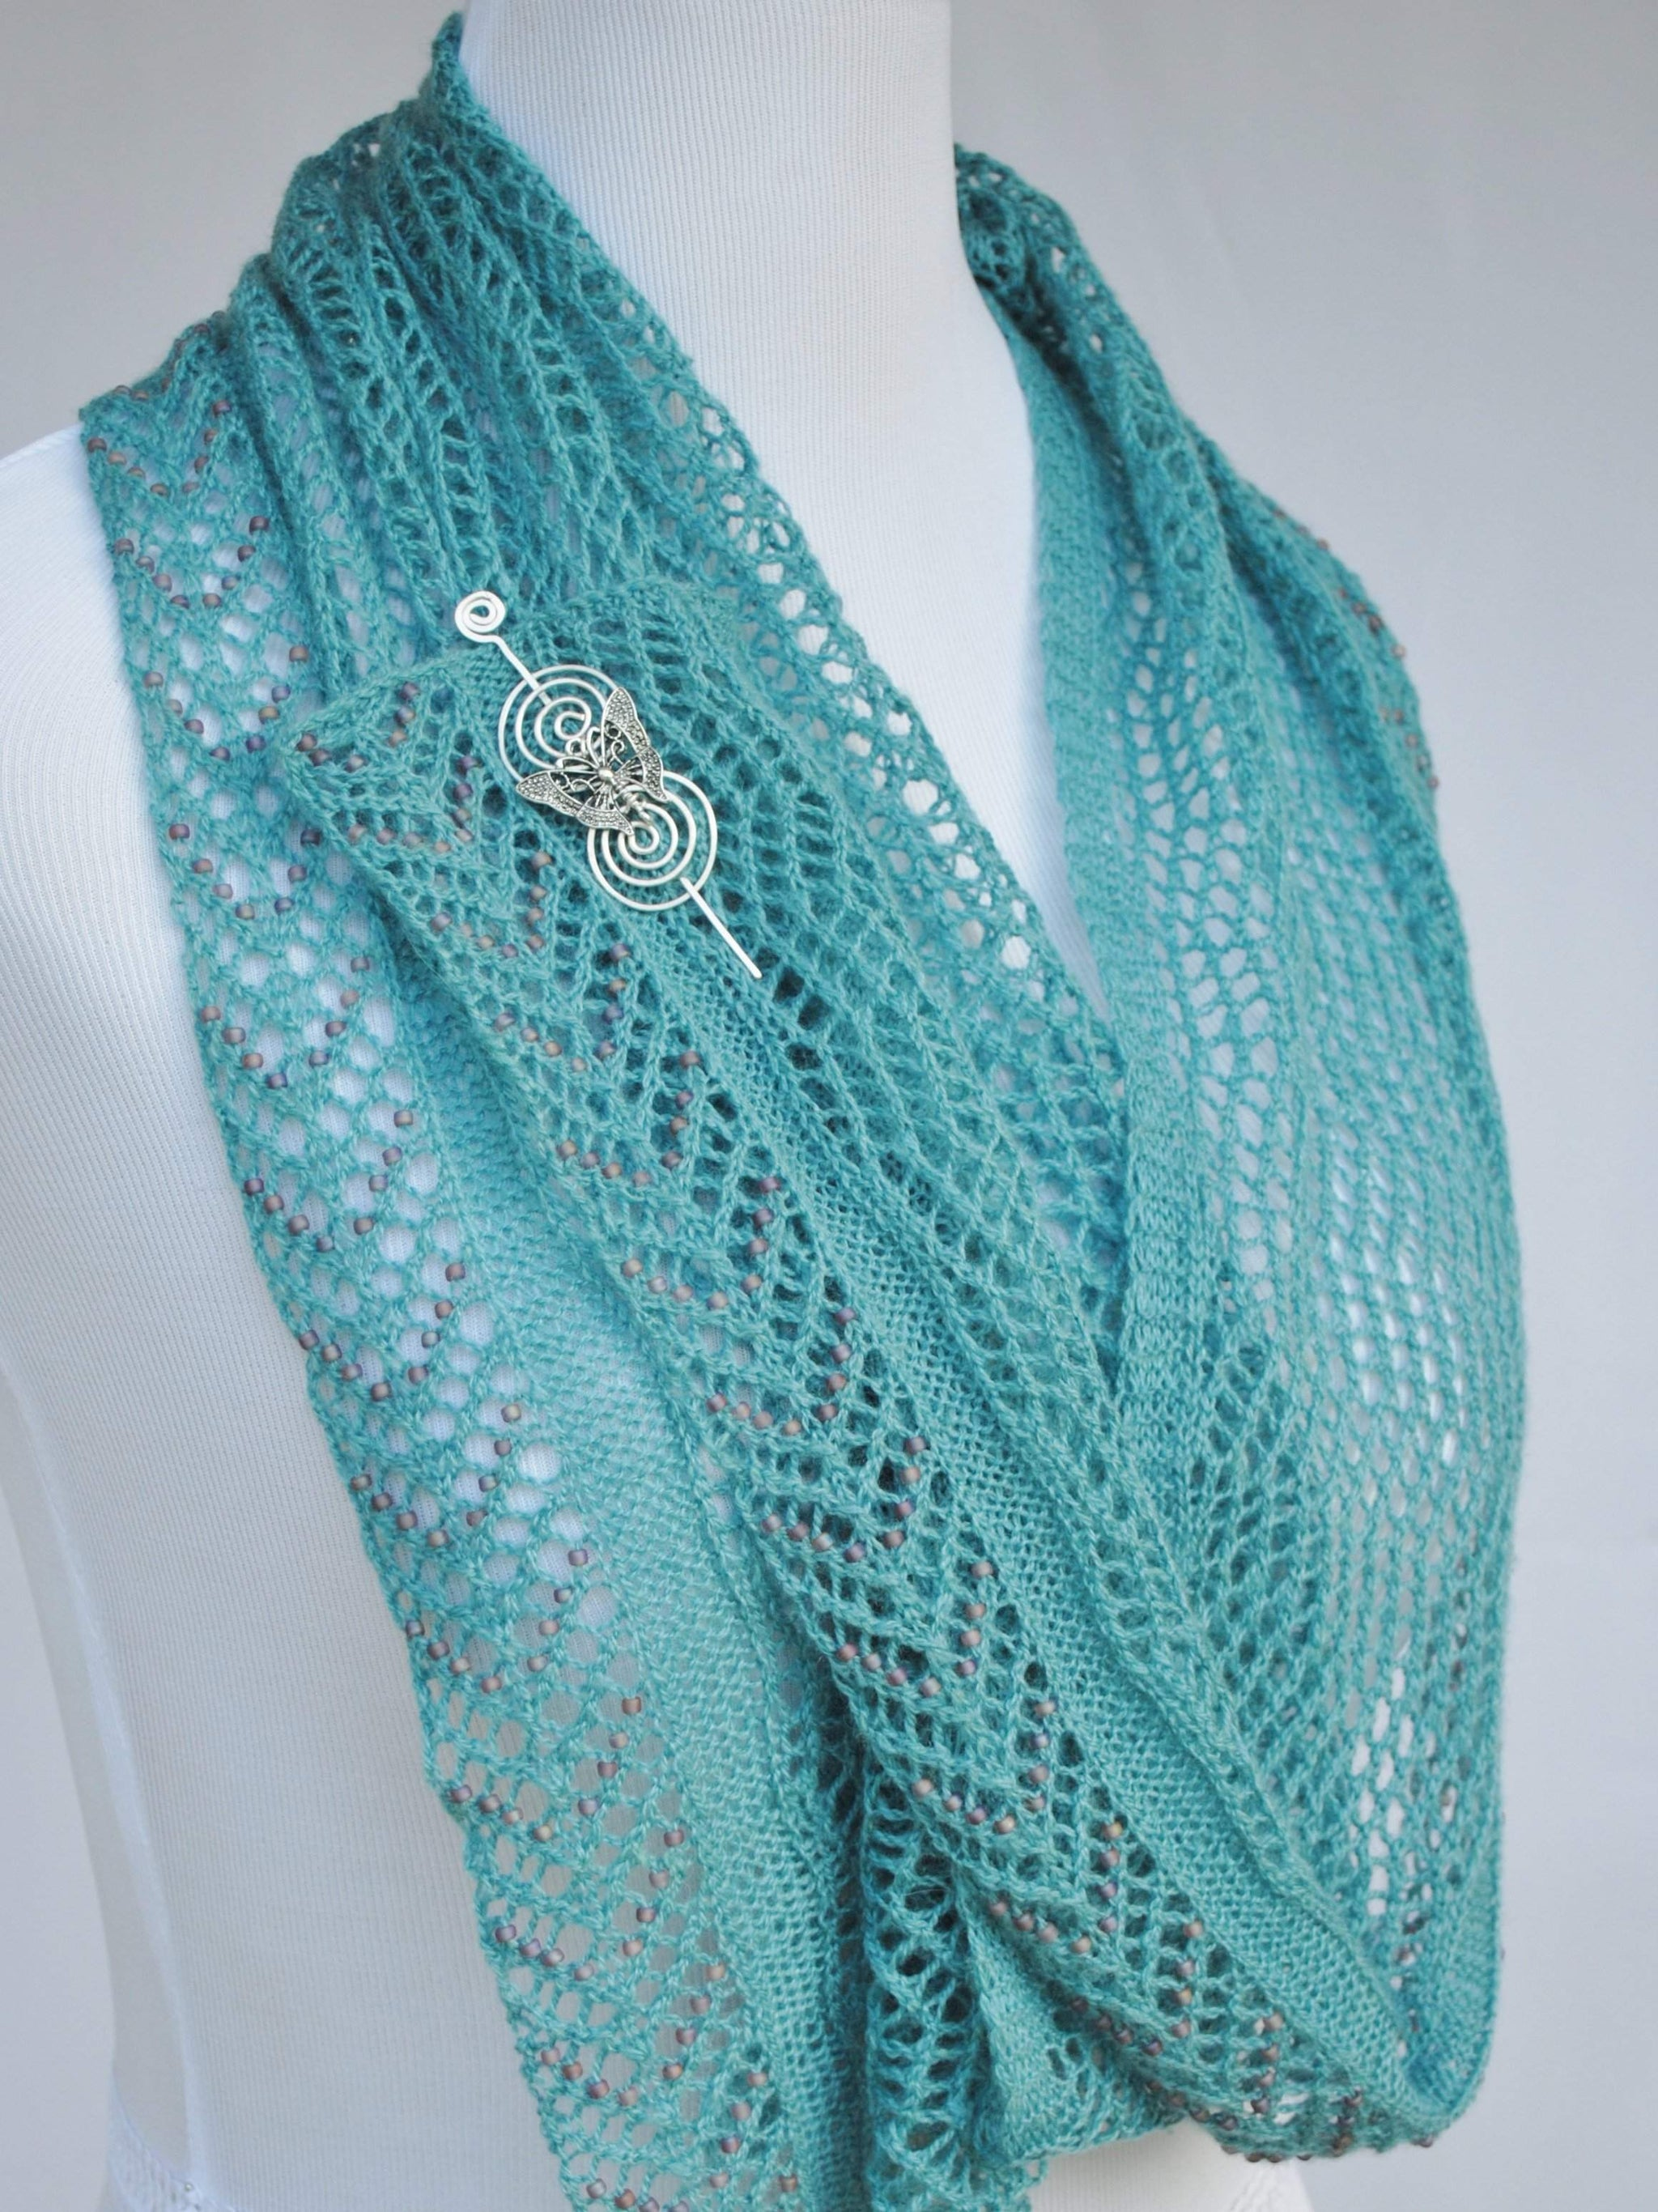 Beadazzled Beaded Lace Shawl Knitting Pattern PDF Download - Crafty ...